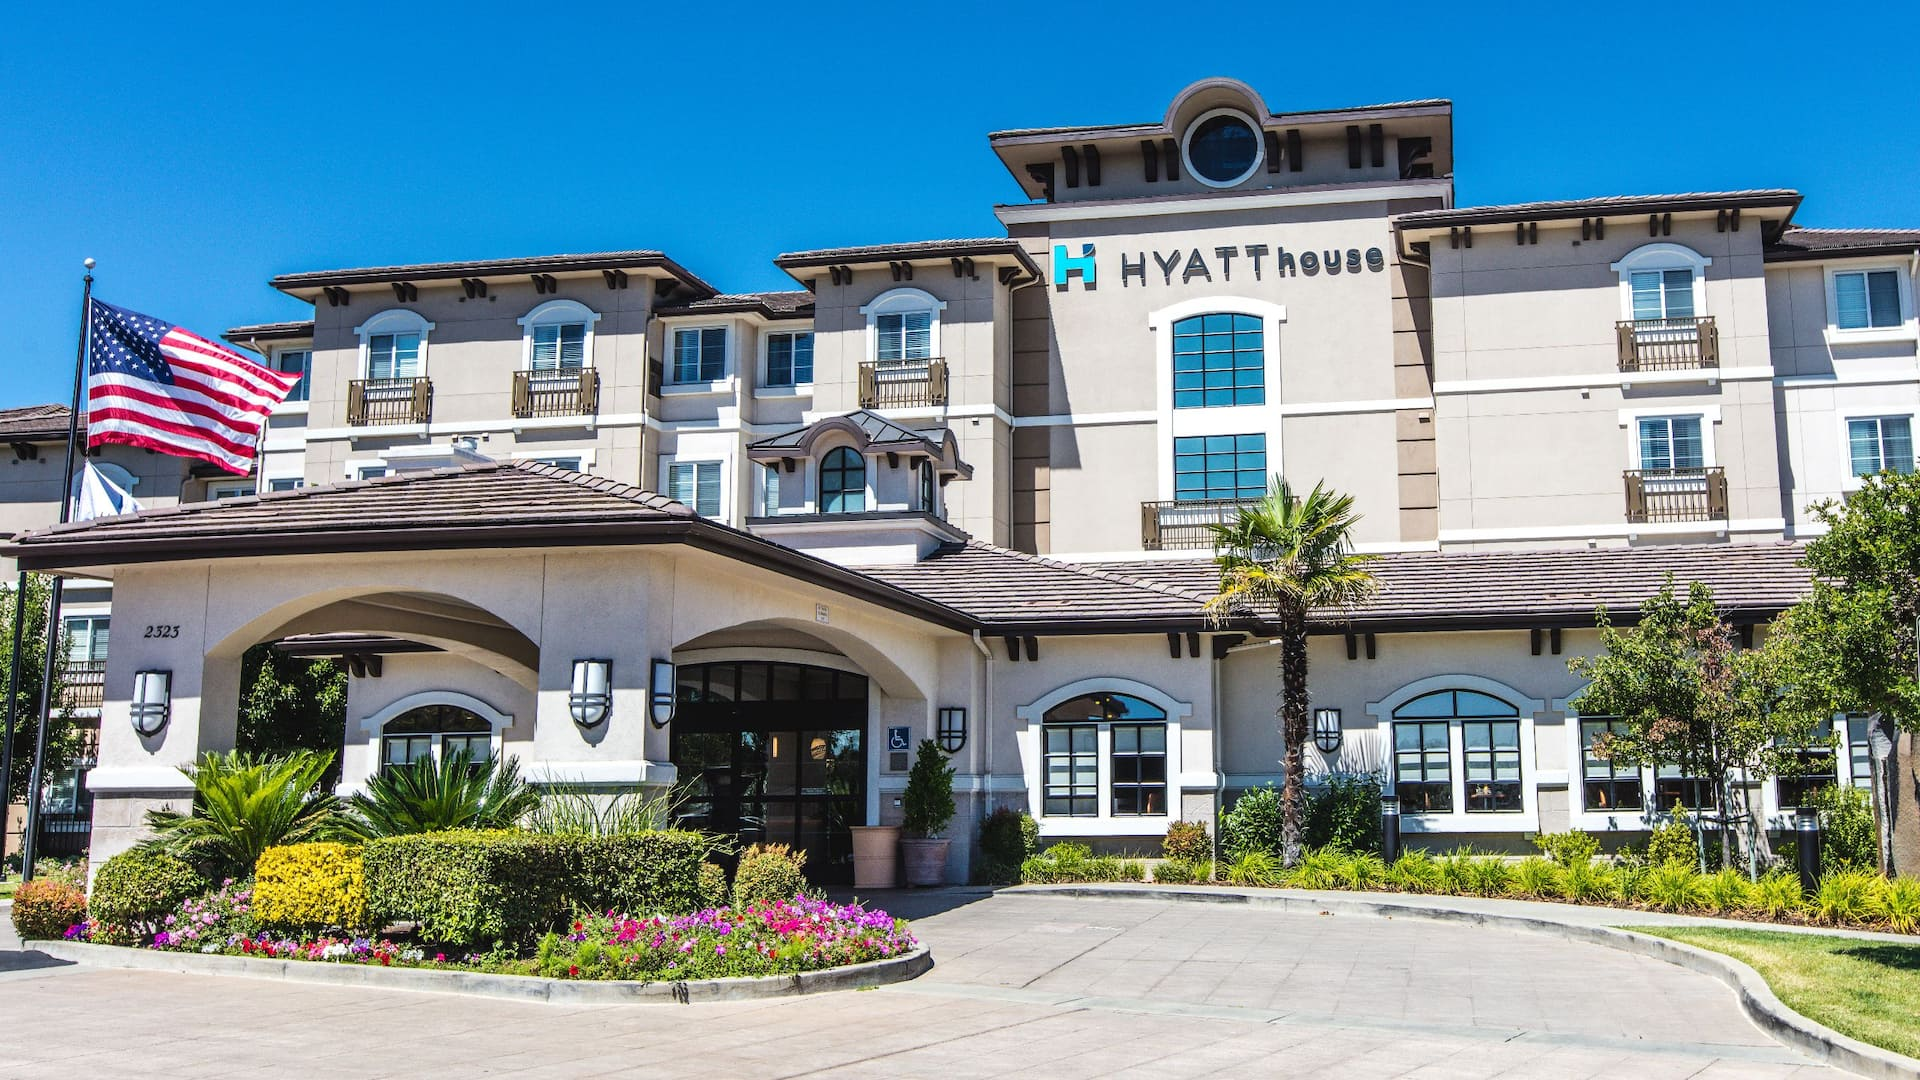 Hyatt House Exterior Flag